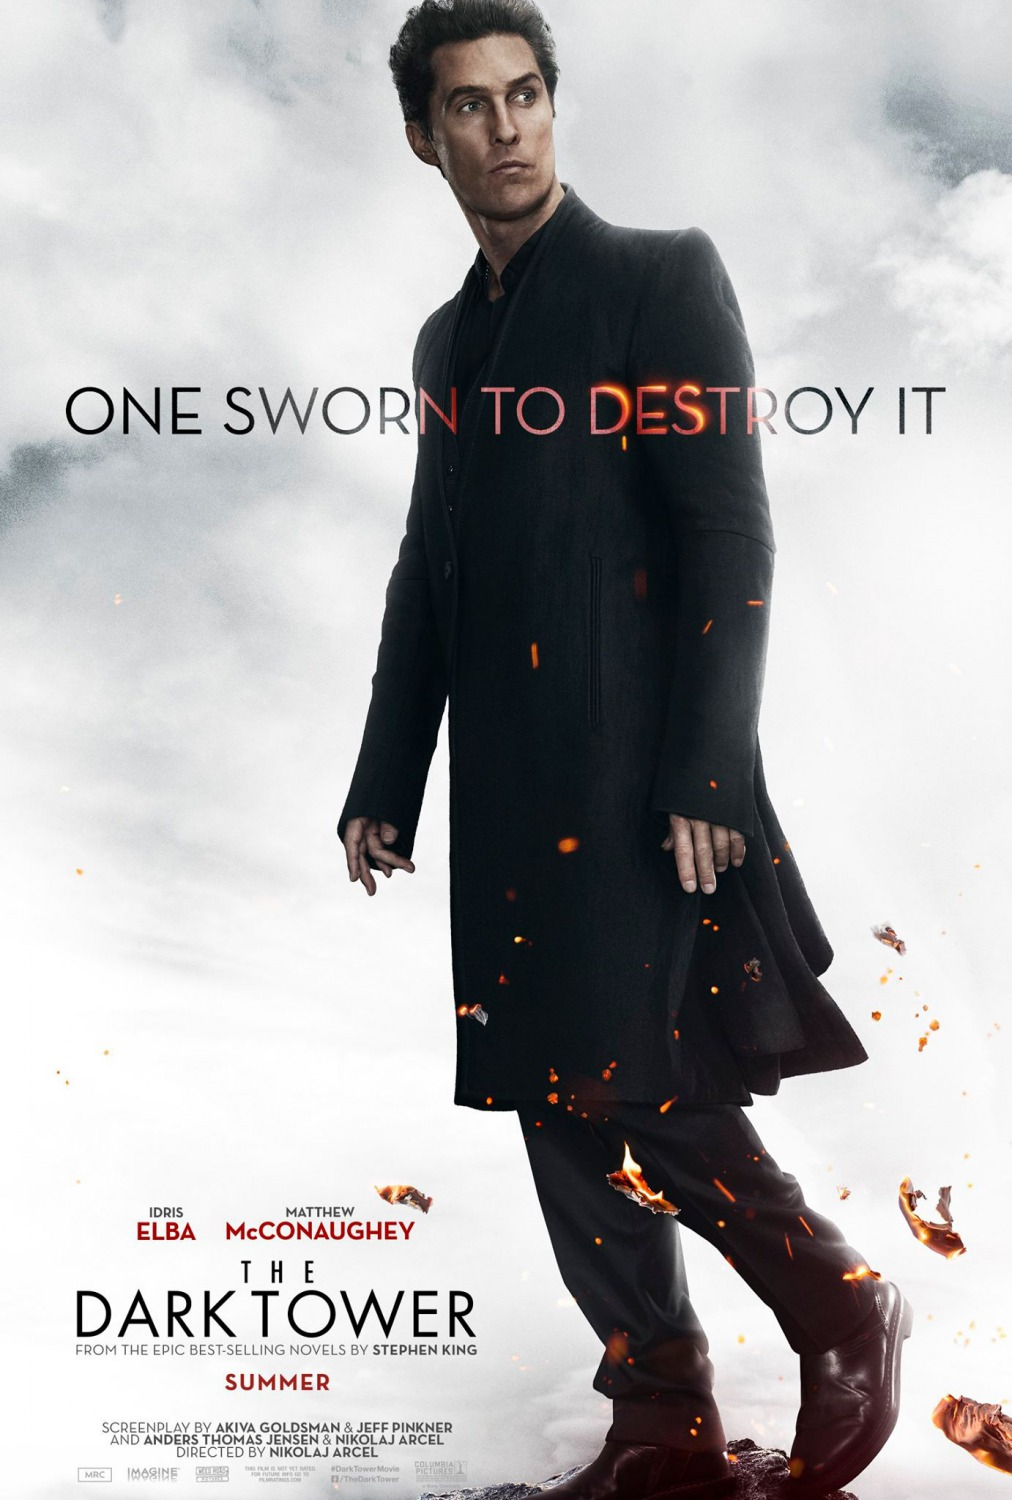 Extra Large Movie Poster Image for The Dark Tower (#3 of 3)